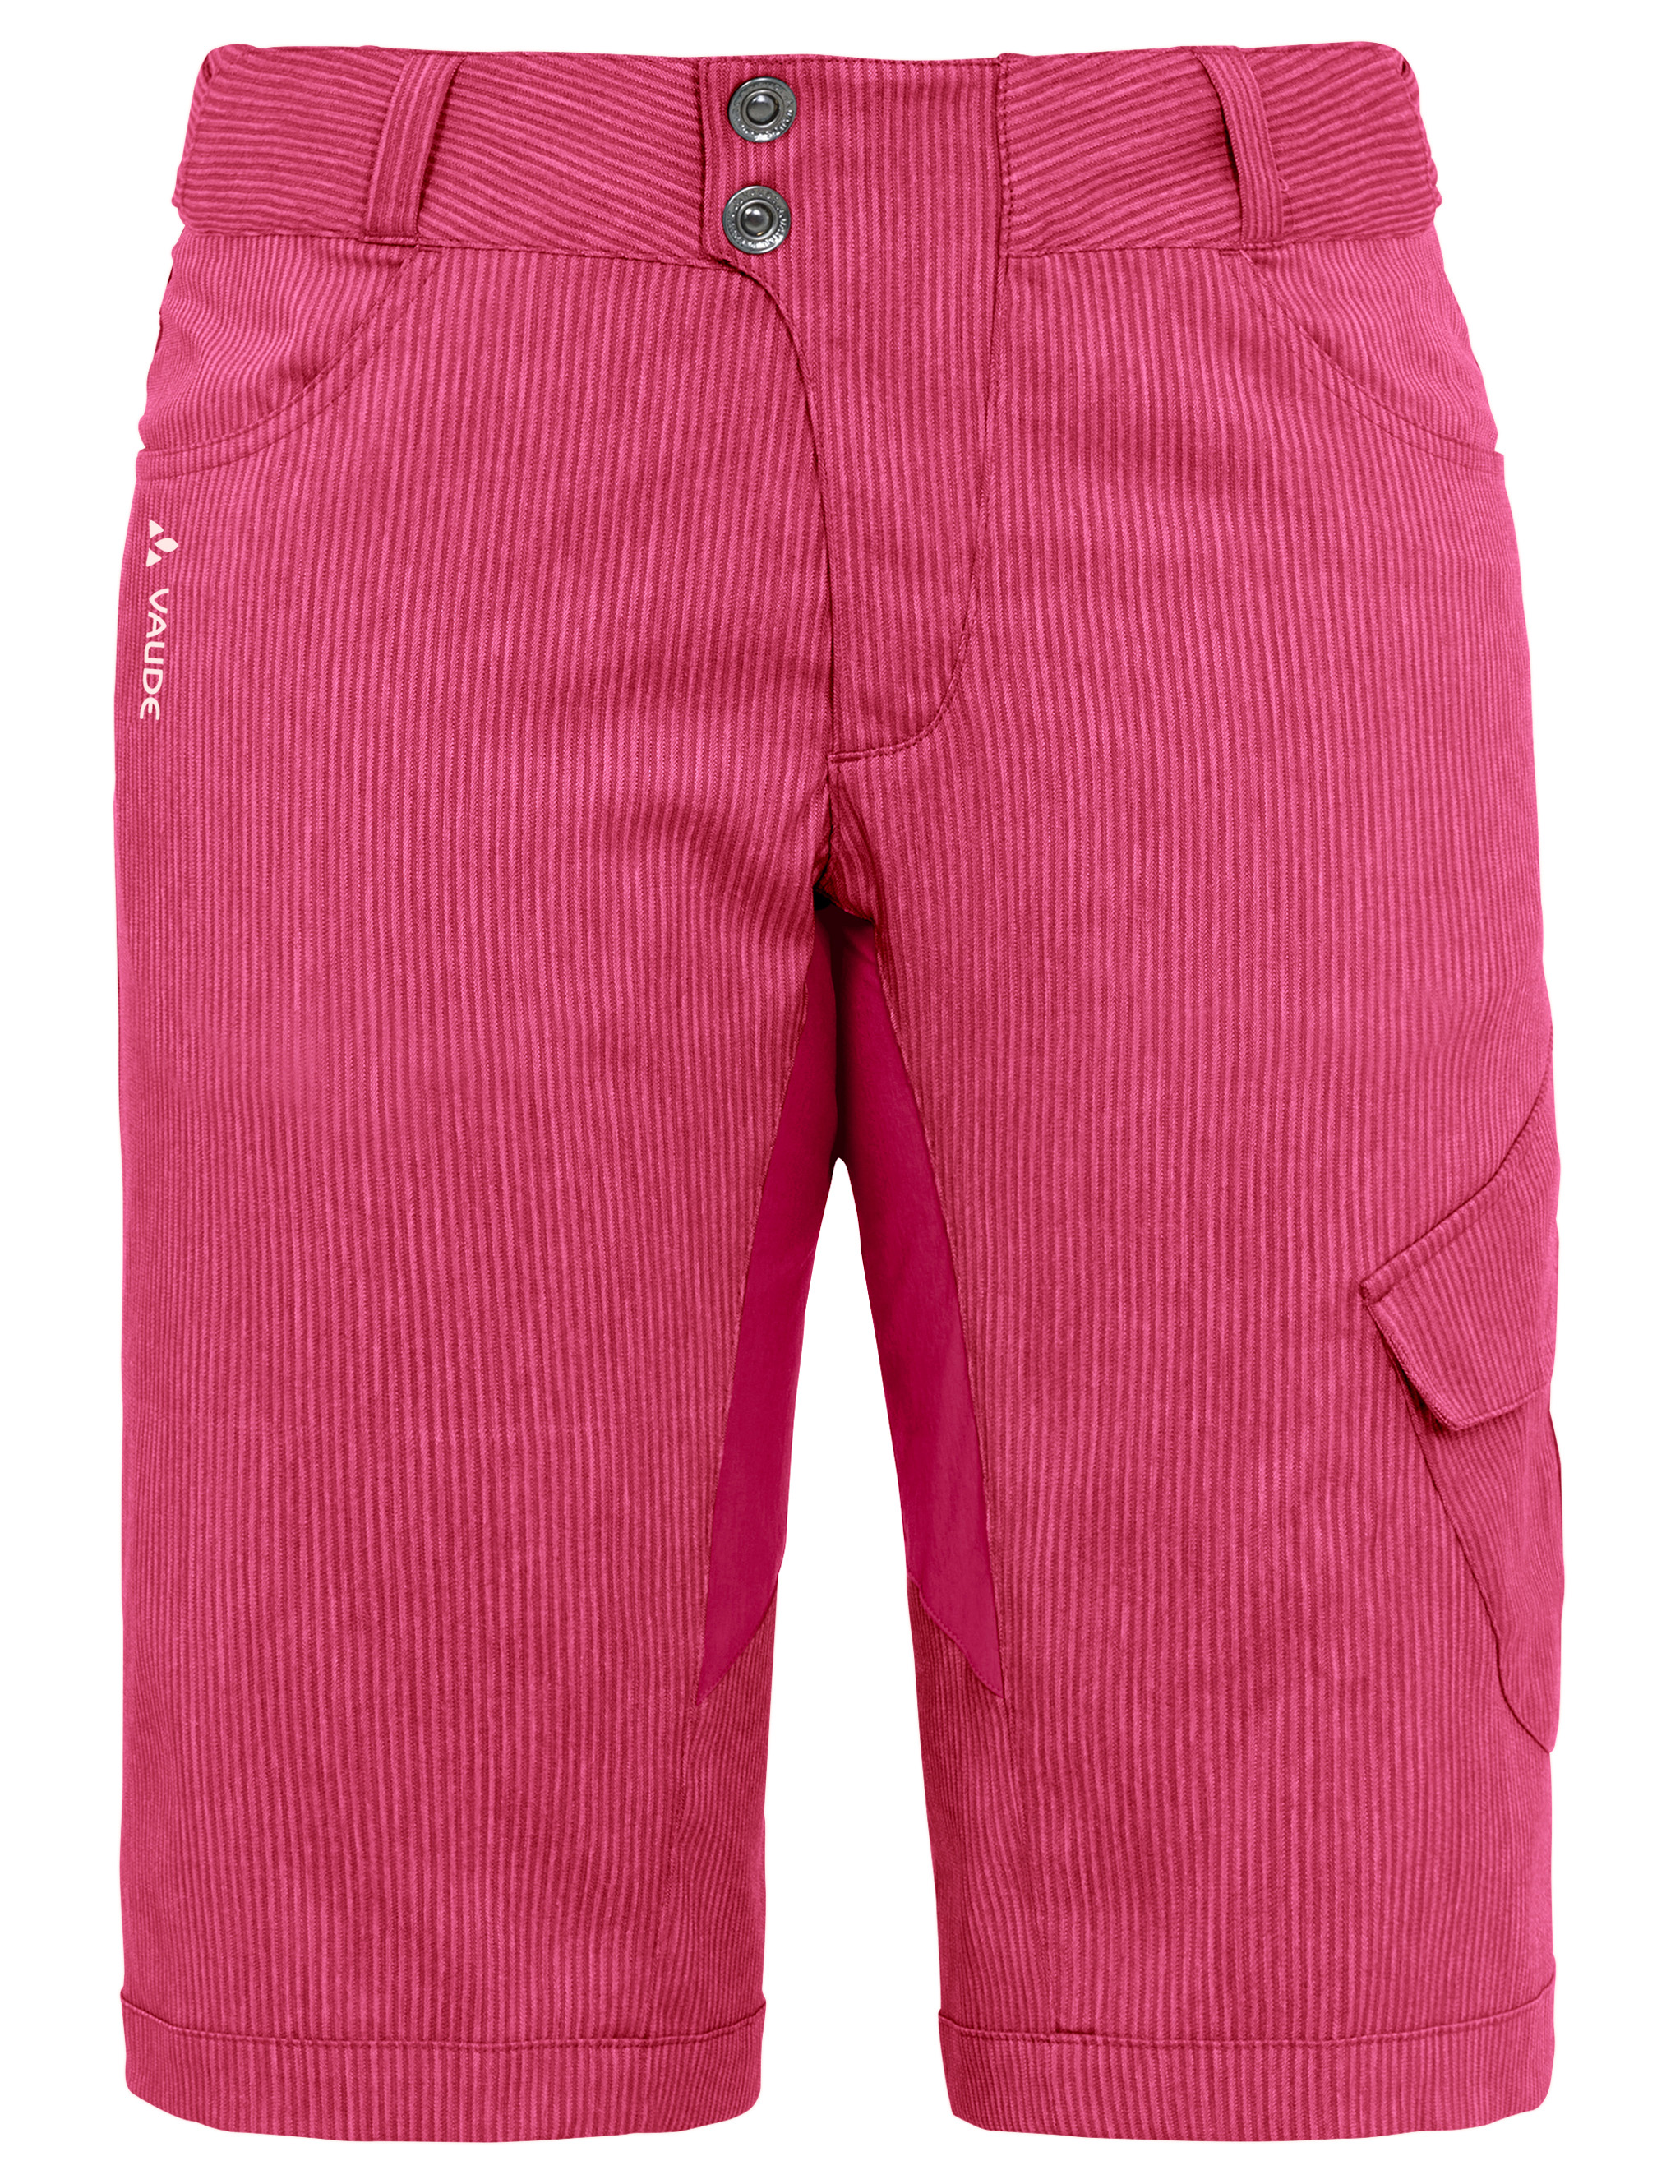 VAUDE Women´s Tremalzo Shorts grenadine Größe 36 - schneider-sports